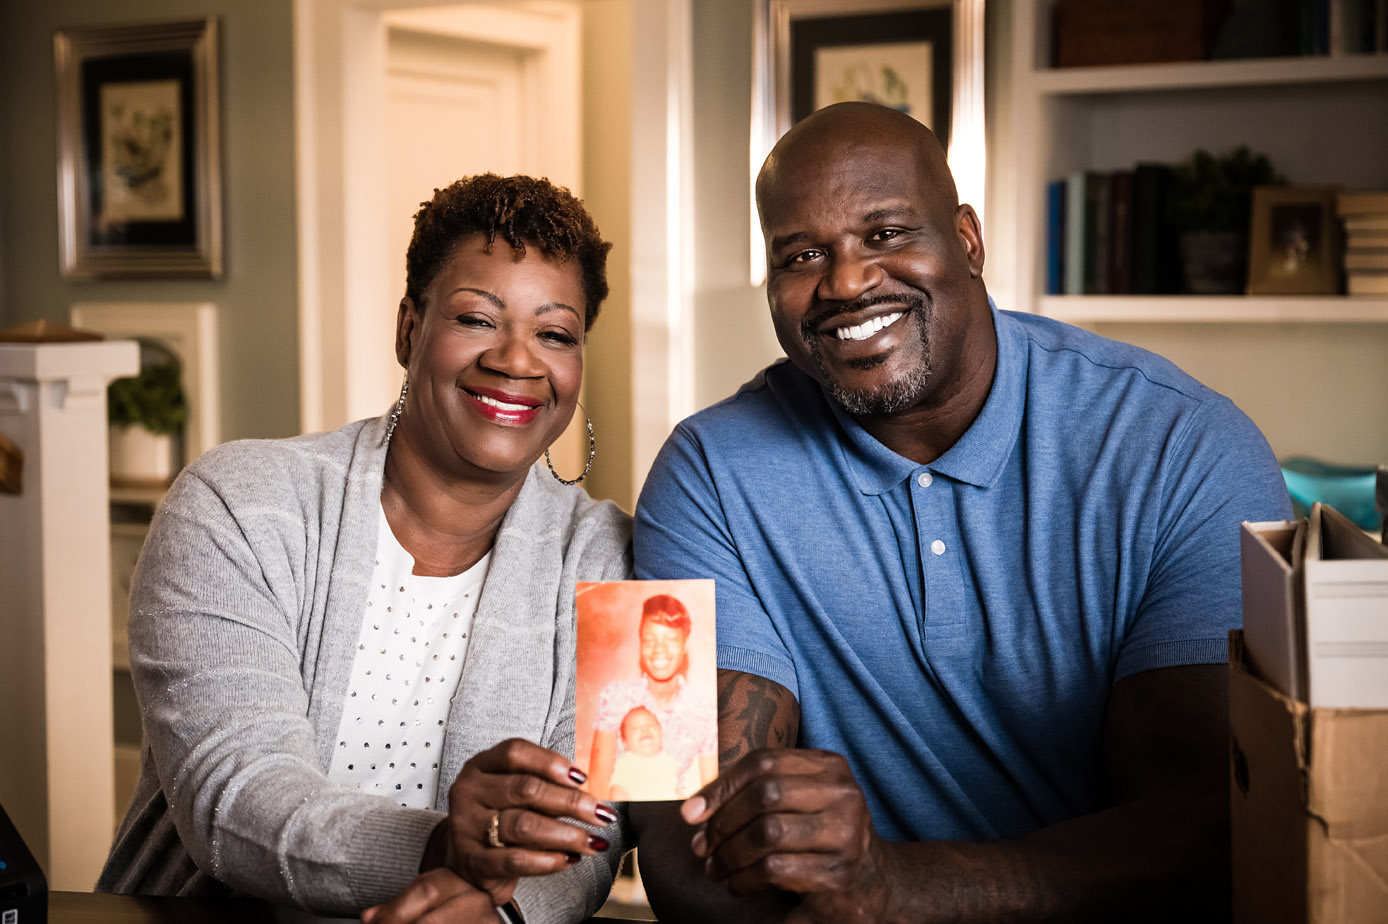 Lucille and Shaquille O'Neal share a photo of Lucille holding Shaquille as a baby